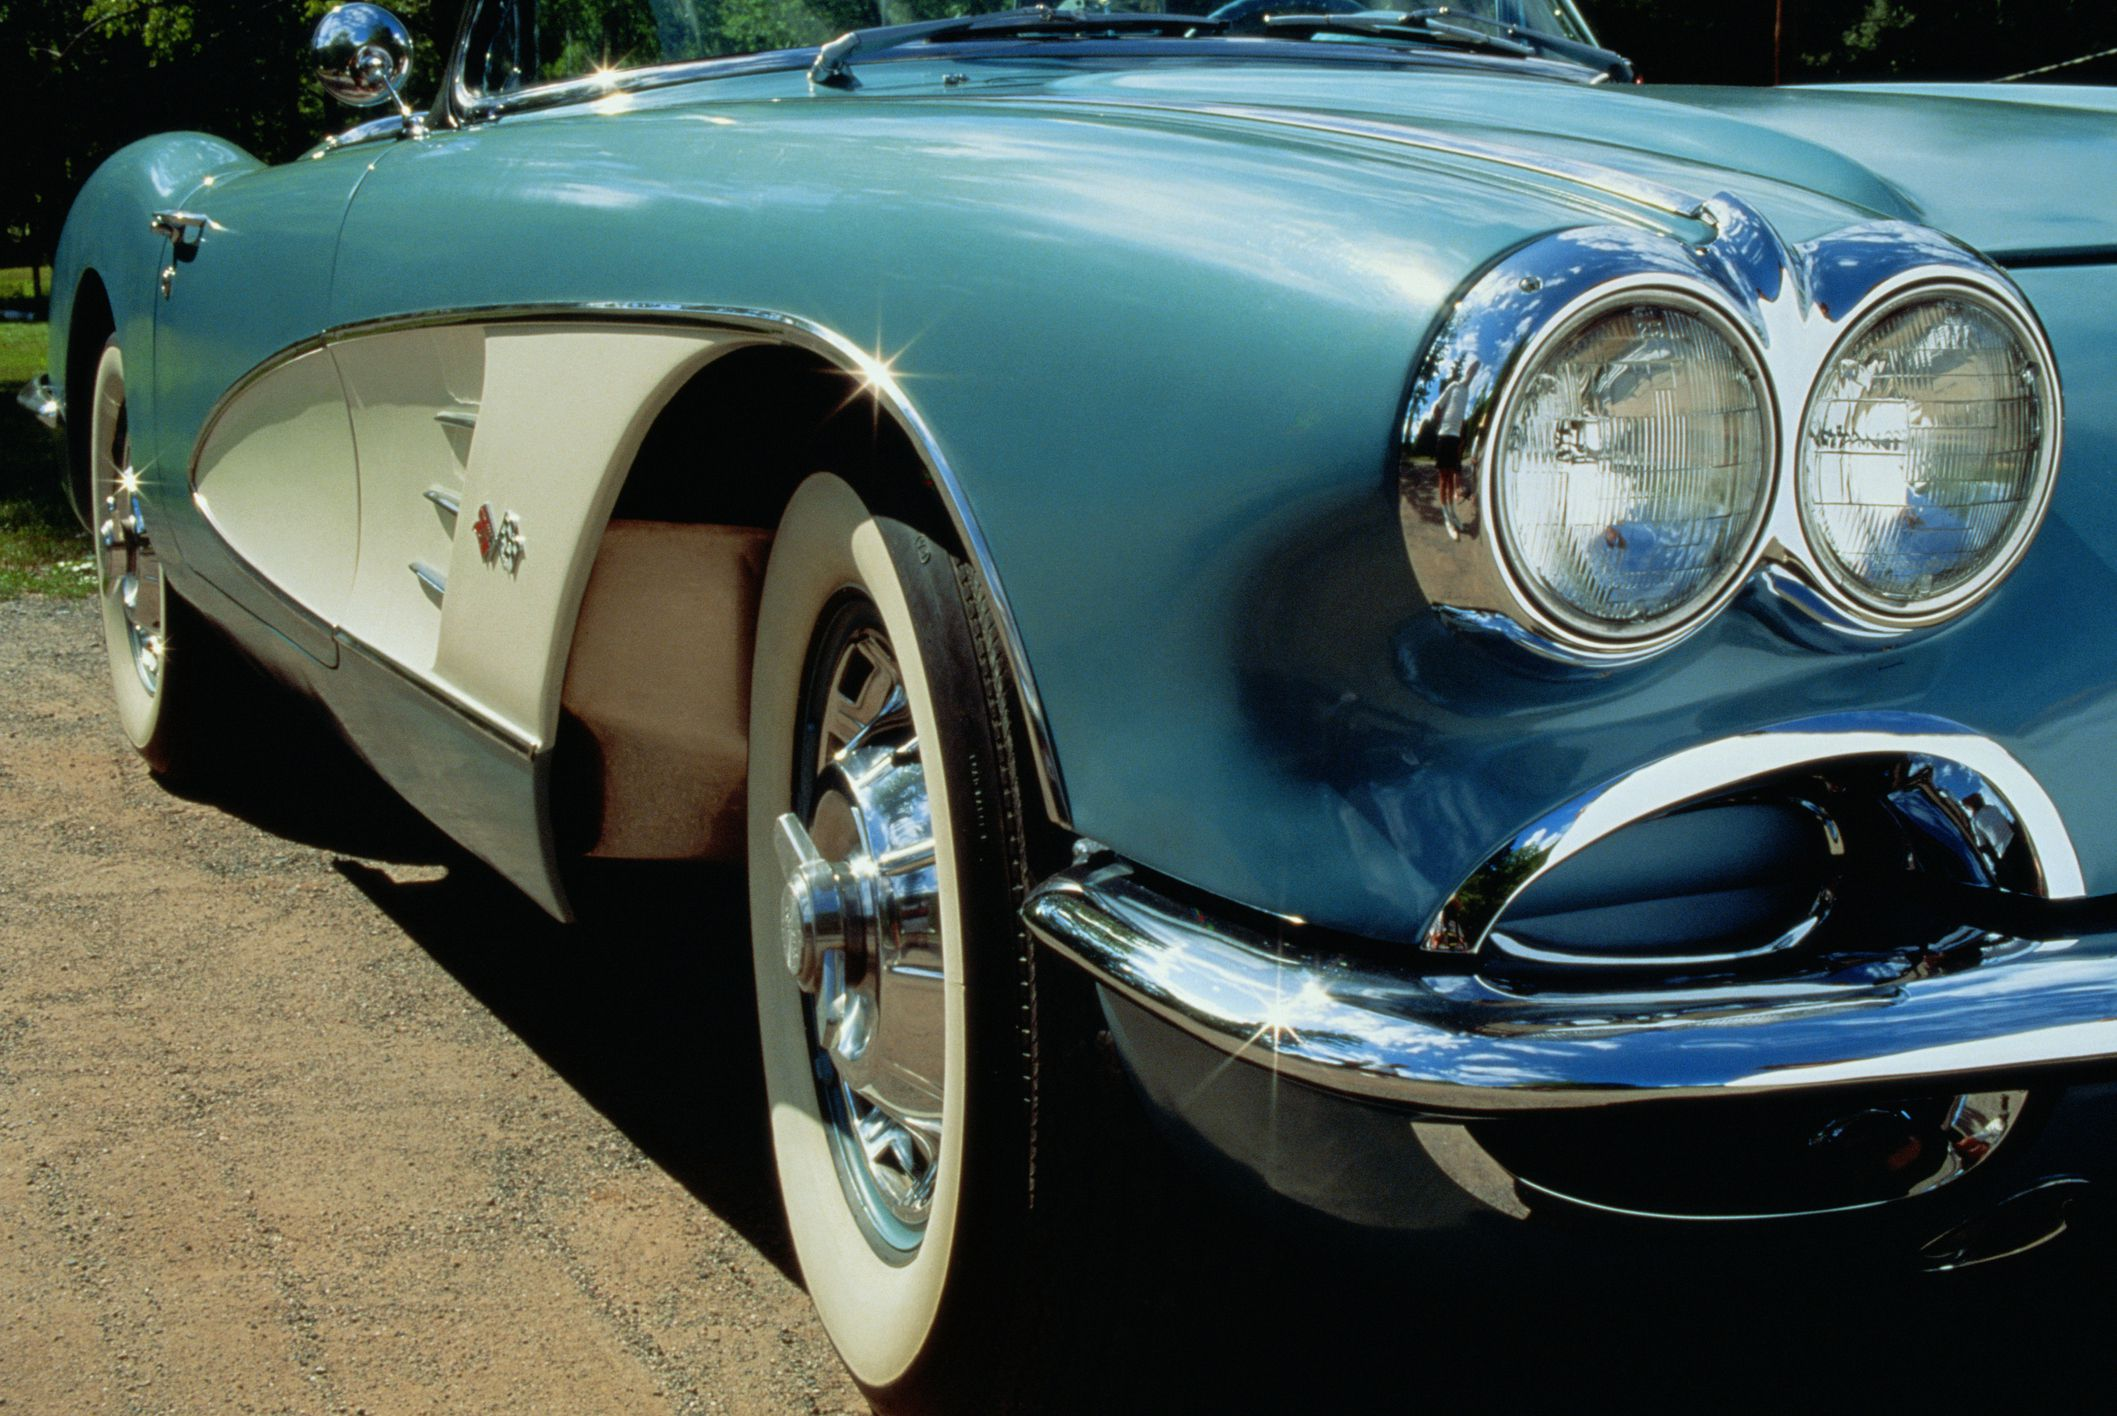 Learn How to Determine the Market Value of a Classic Car